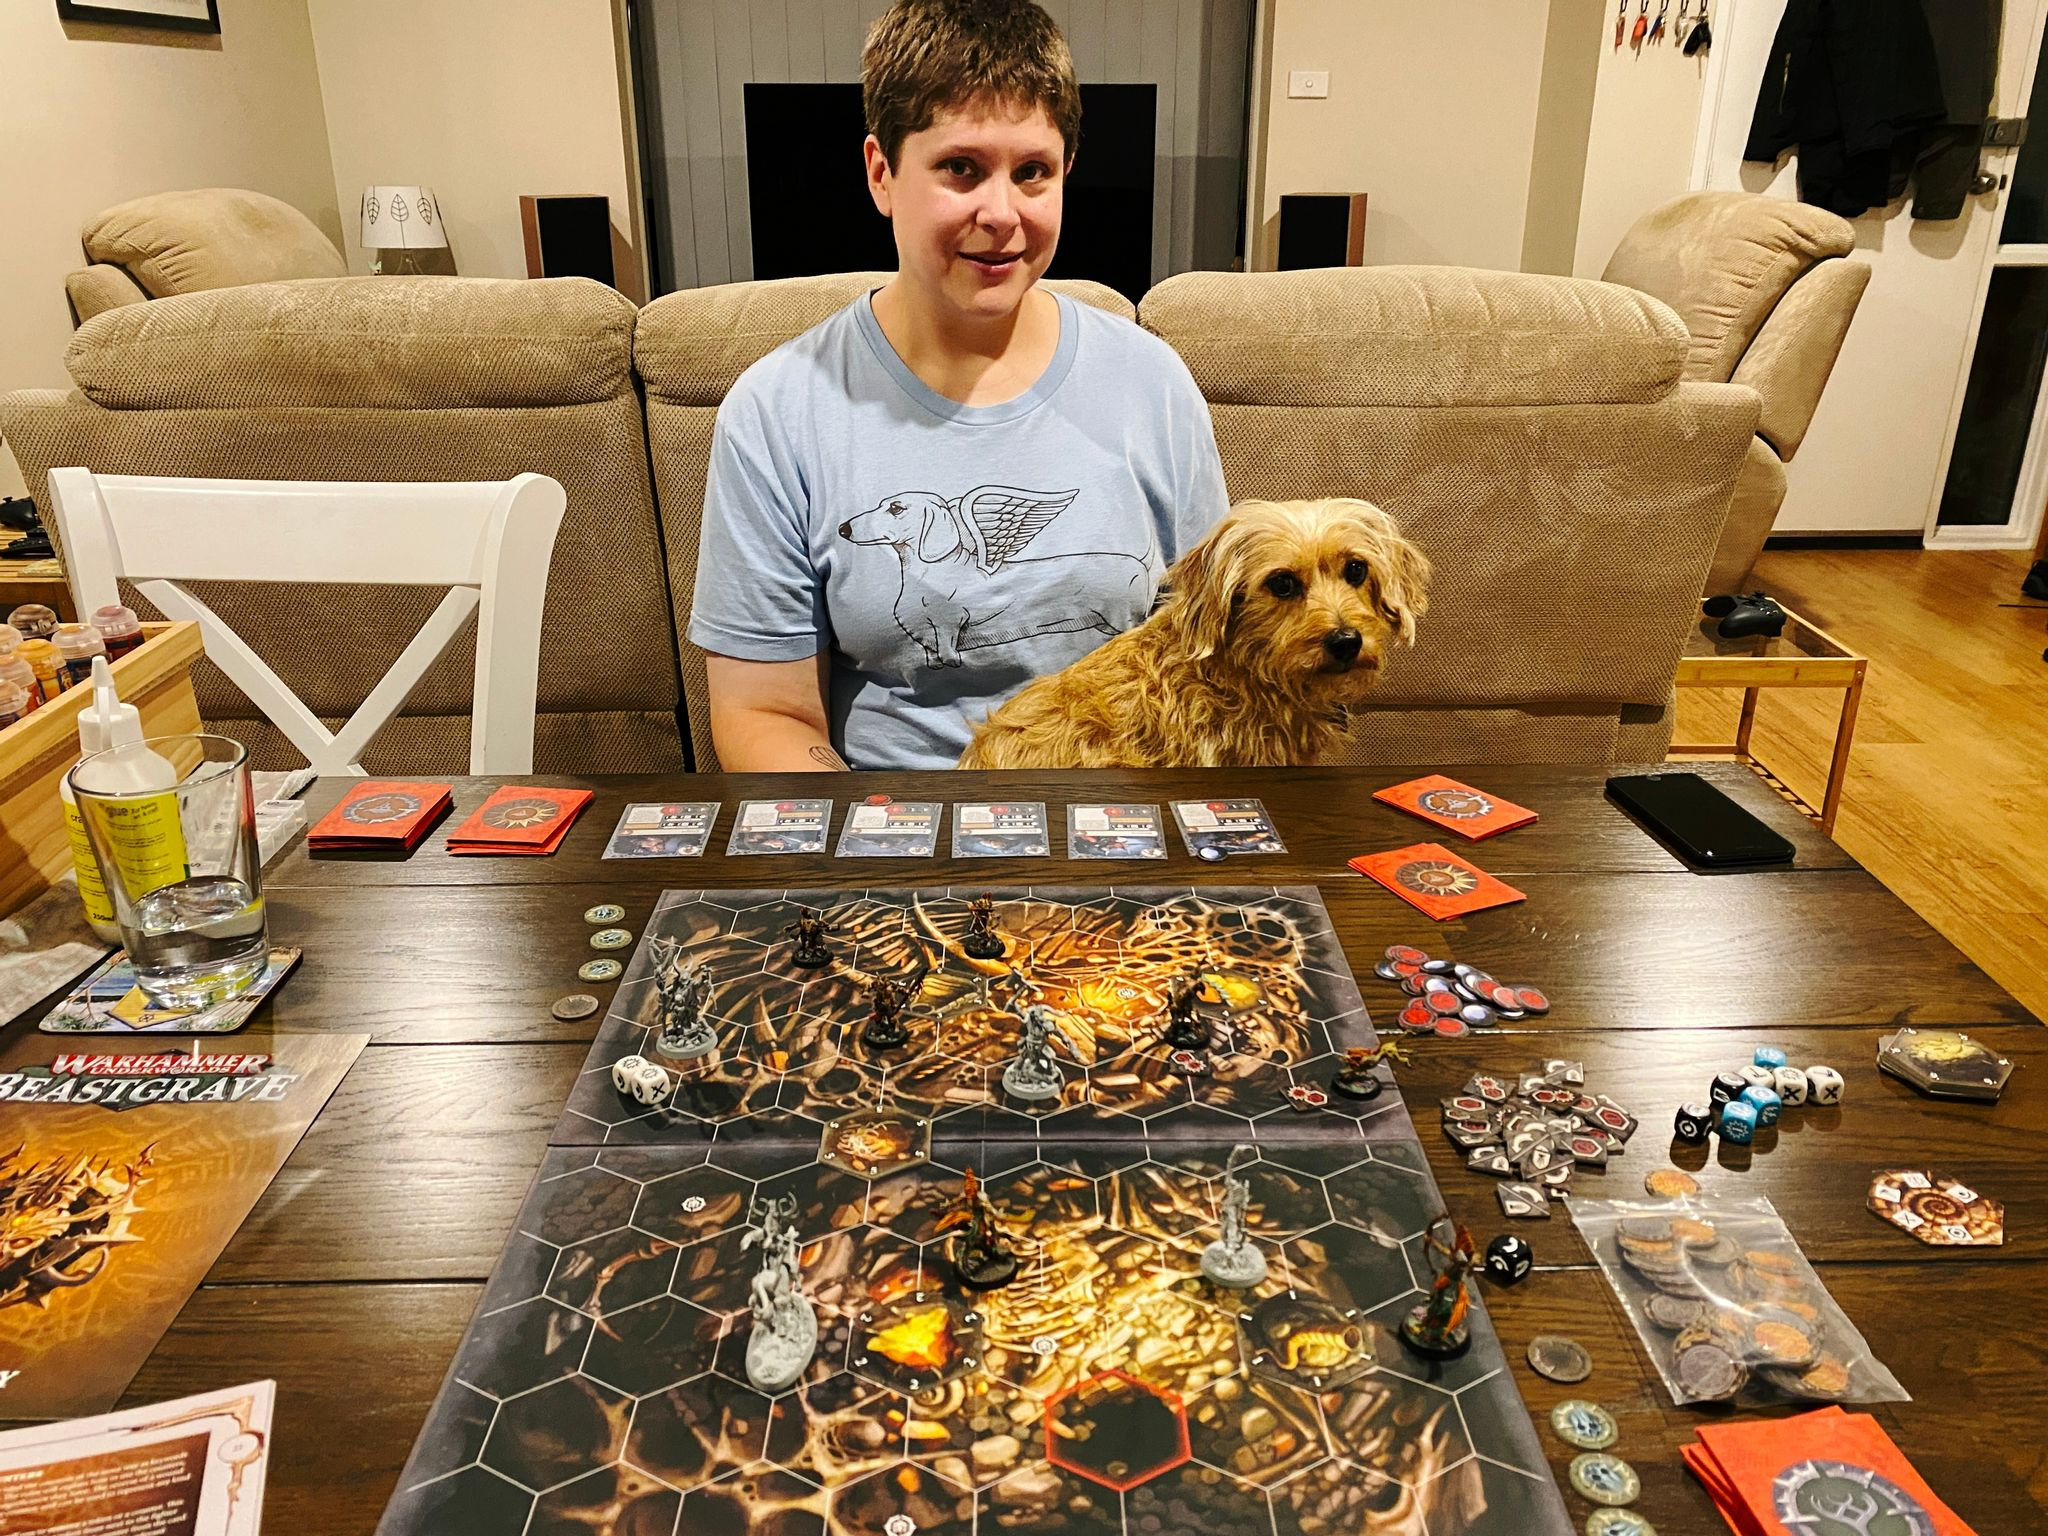 A photo of a table with a board and miniatures on it, with a white woman with short hair sitting on the other side of the table and smiling. She has a small scruffy blonde dog sitting in her lap who is also looking at the camera.